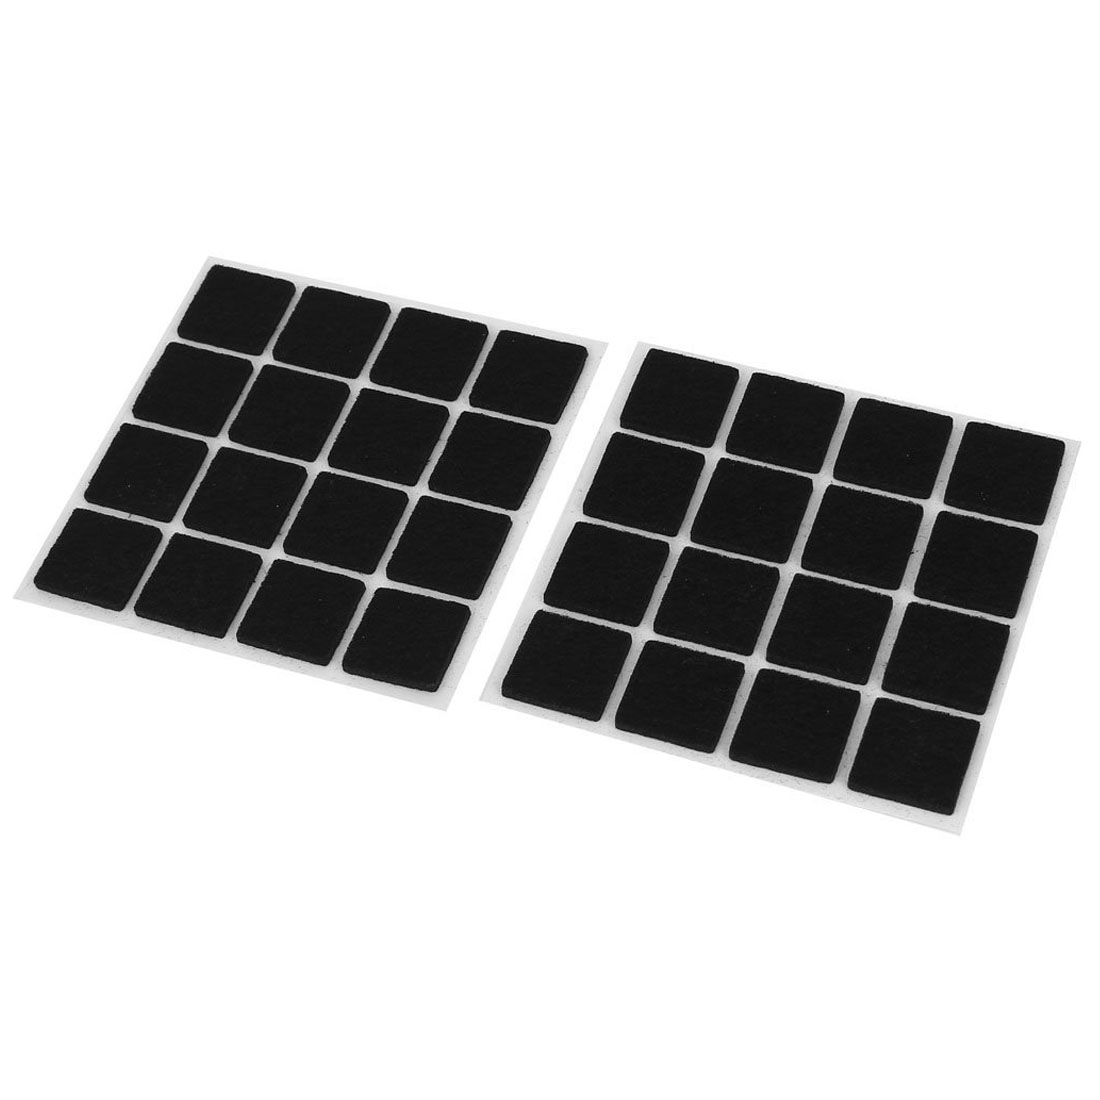 GSFY-Self Adhesive Floor Protectors Furniture Felt Square Pads 32pcsGSFY-Self Adhesive Floor Protectors Furniture Felt Square Pads 32pcs